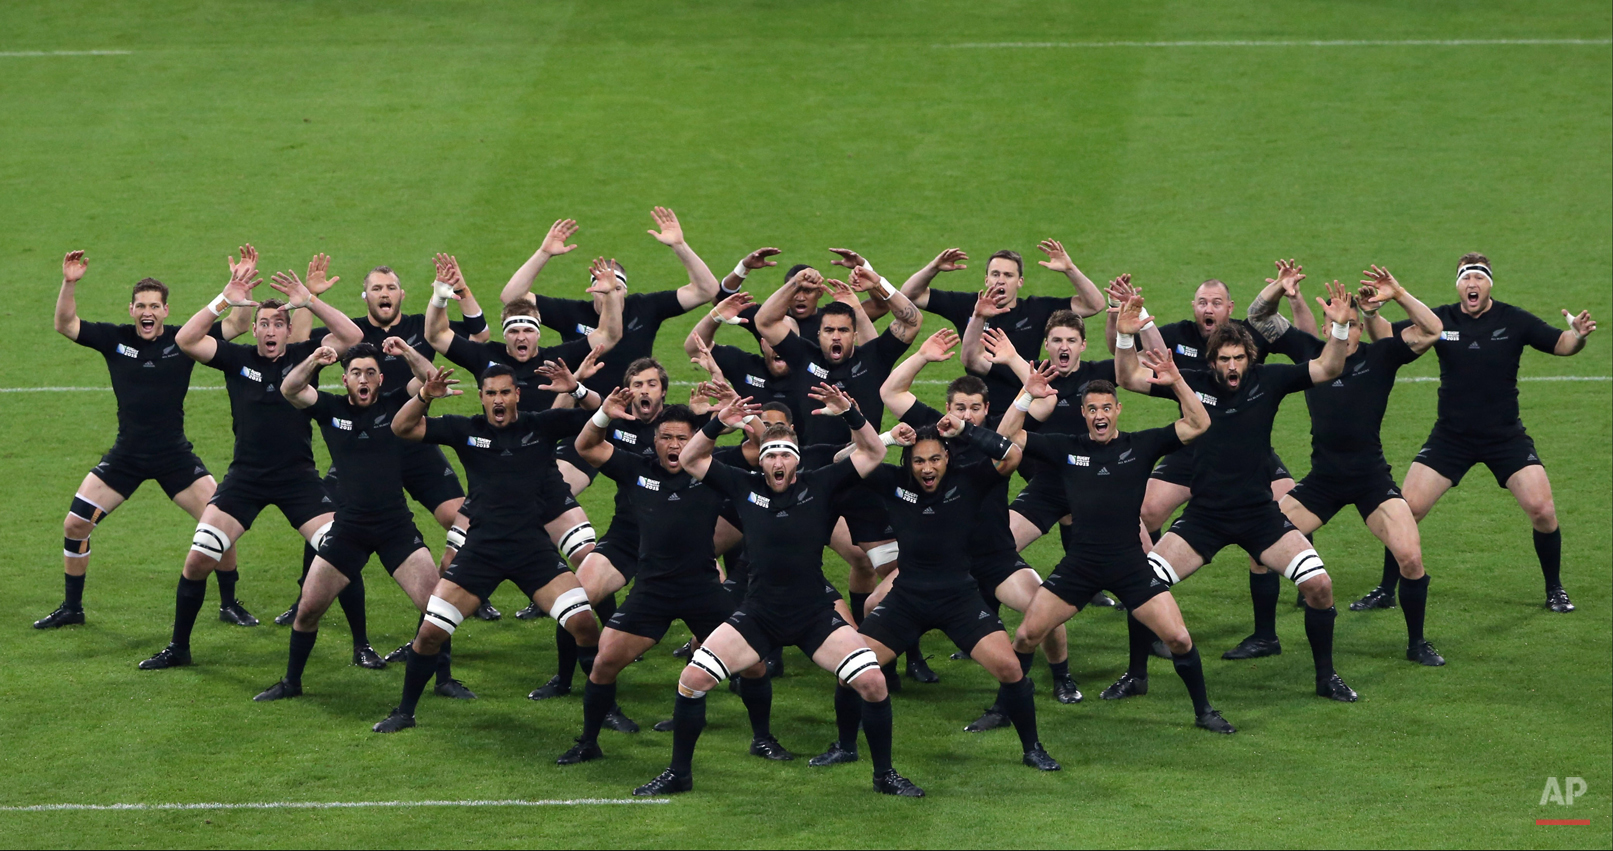 In this Oct. 9, 2015 photo, New Zealand players perform the haka before their Rugby World Cup Pool C match between New Zealand and Tonga at St James' Park, Newcastle, England.  (AP Photo/Scott Heppell)